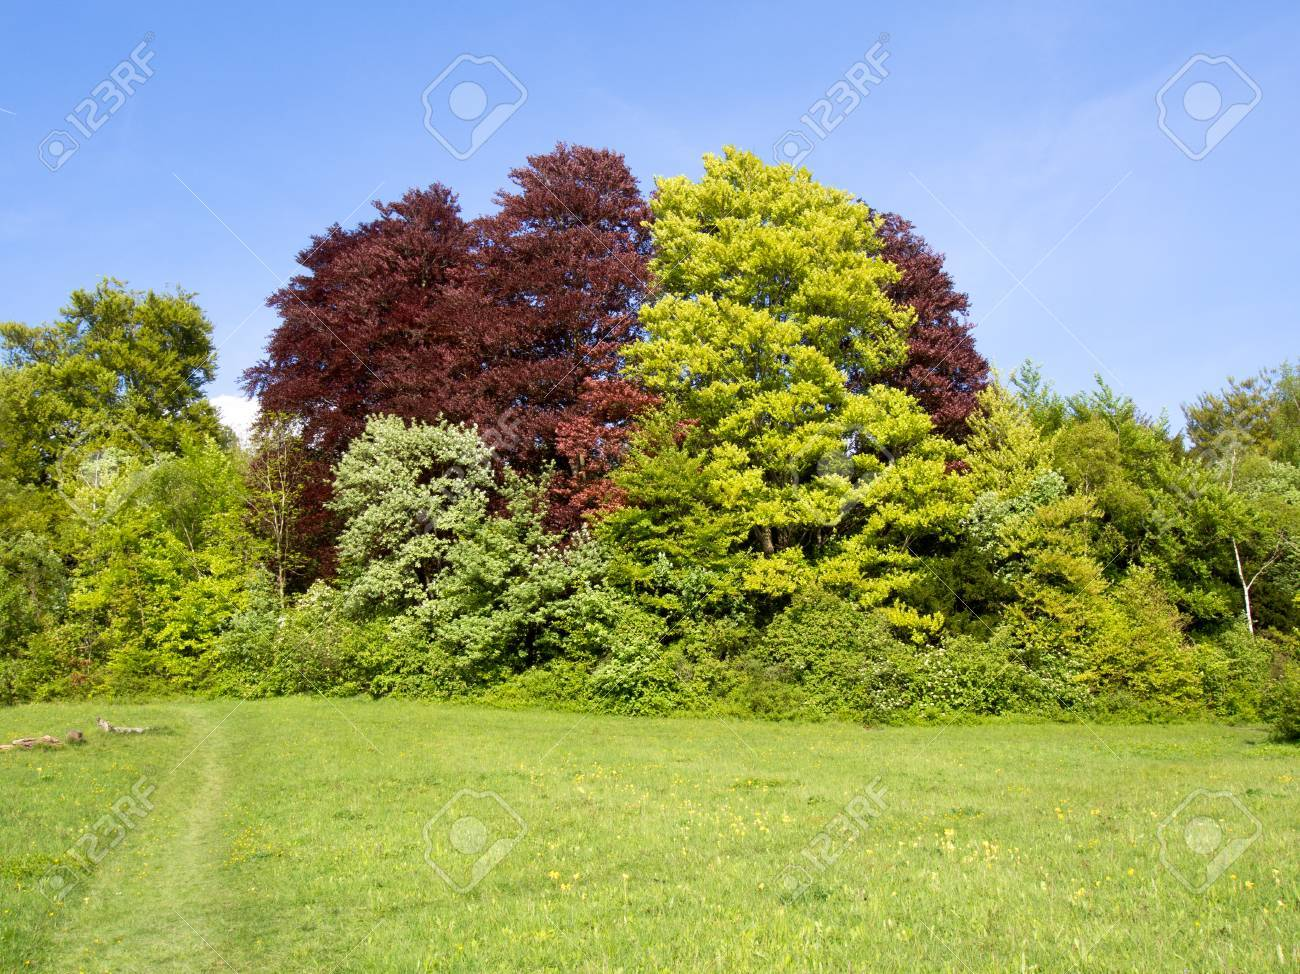 Different Colored Trees On Edge Of A Field Stock Photo, Picture And ...